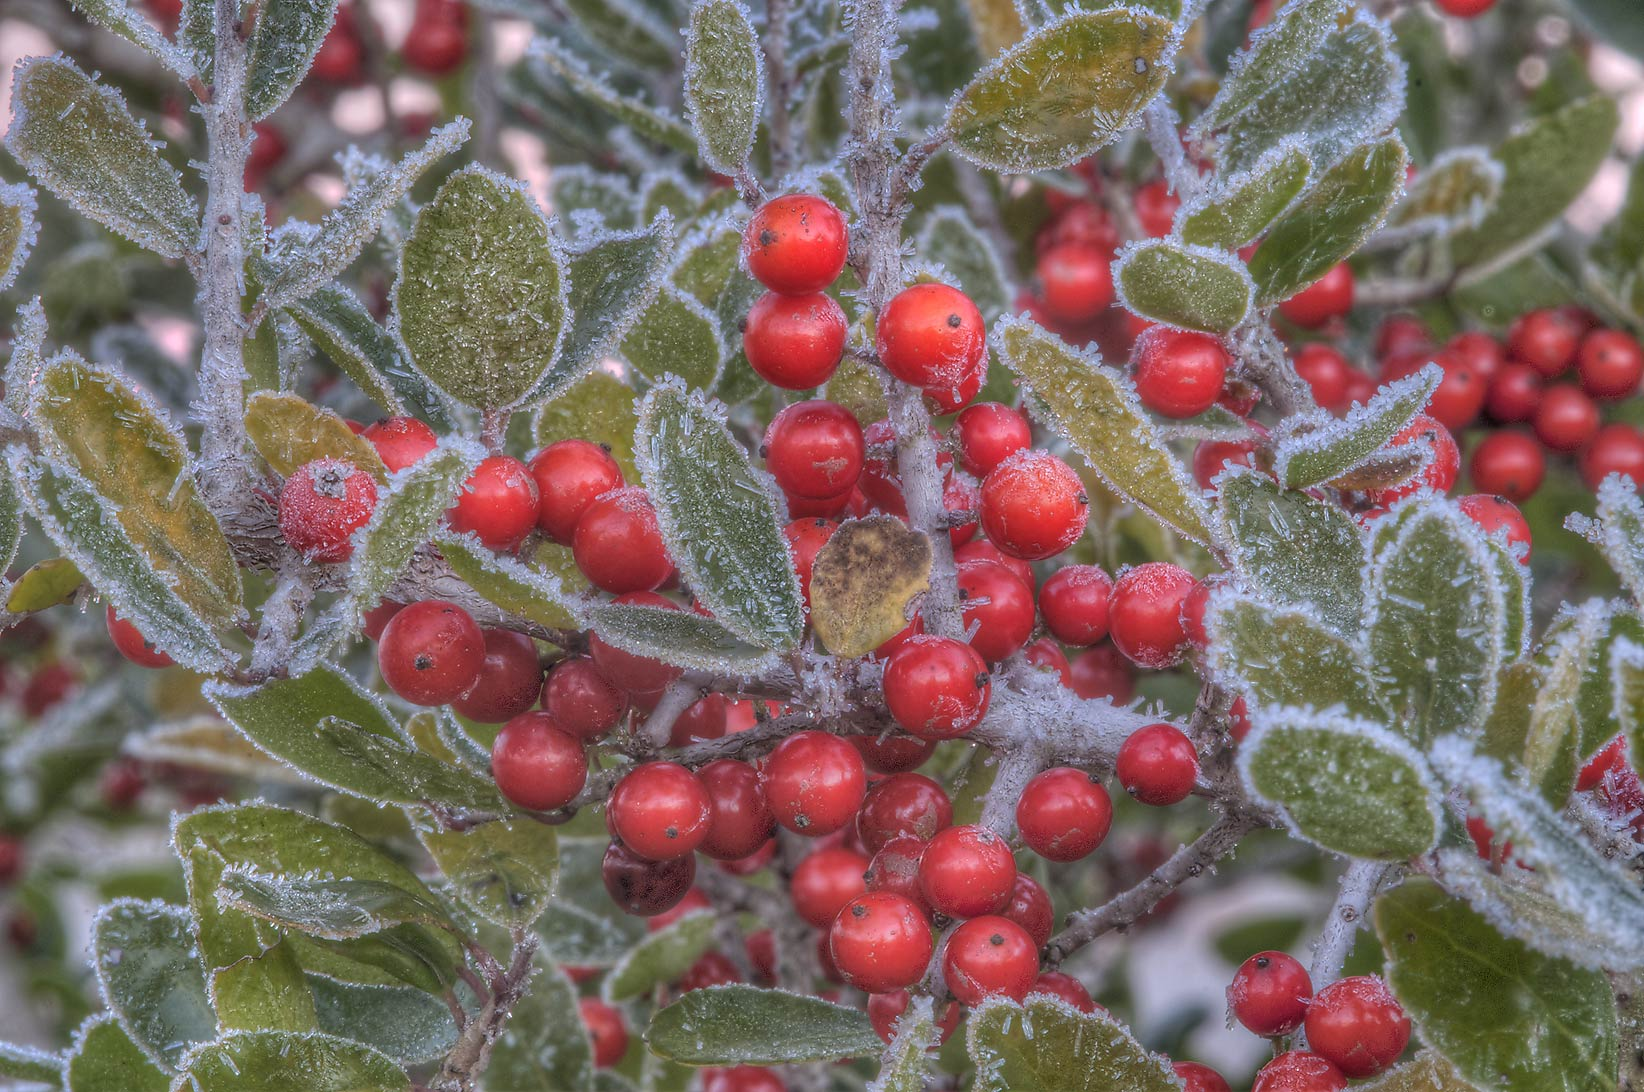 Red berries of yaupon holly (Ilex vomitoria) with...Creek Park. College Station, Texas